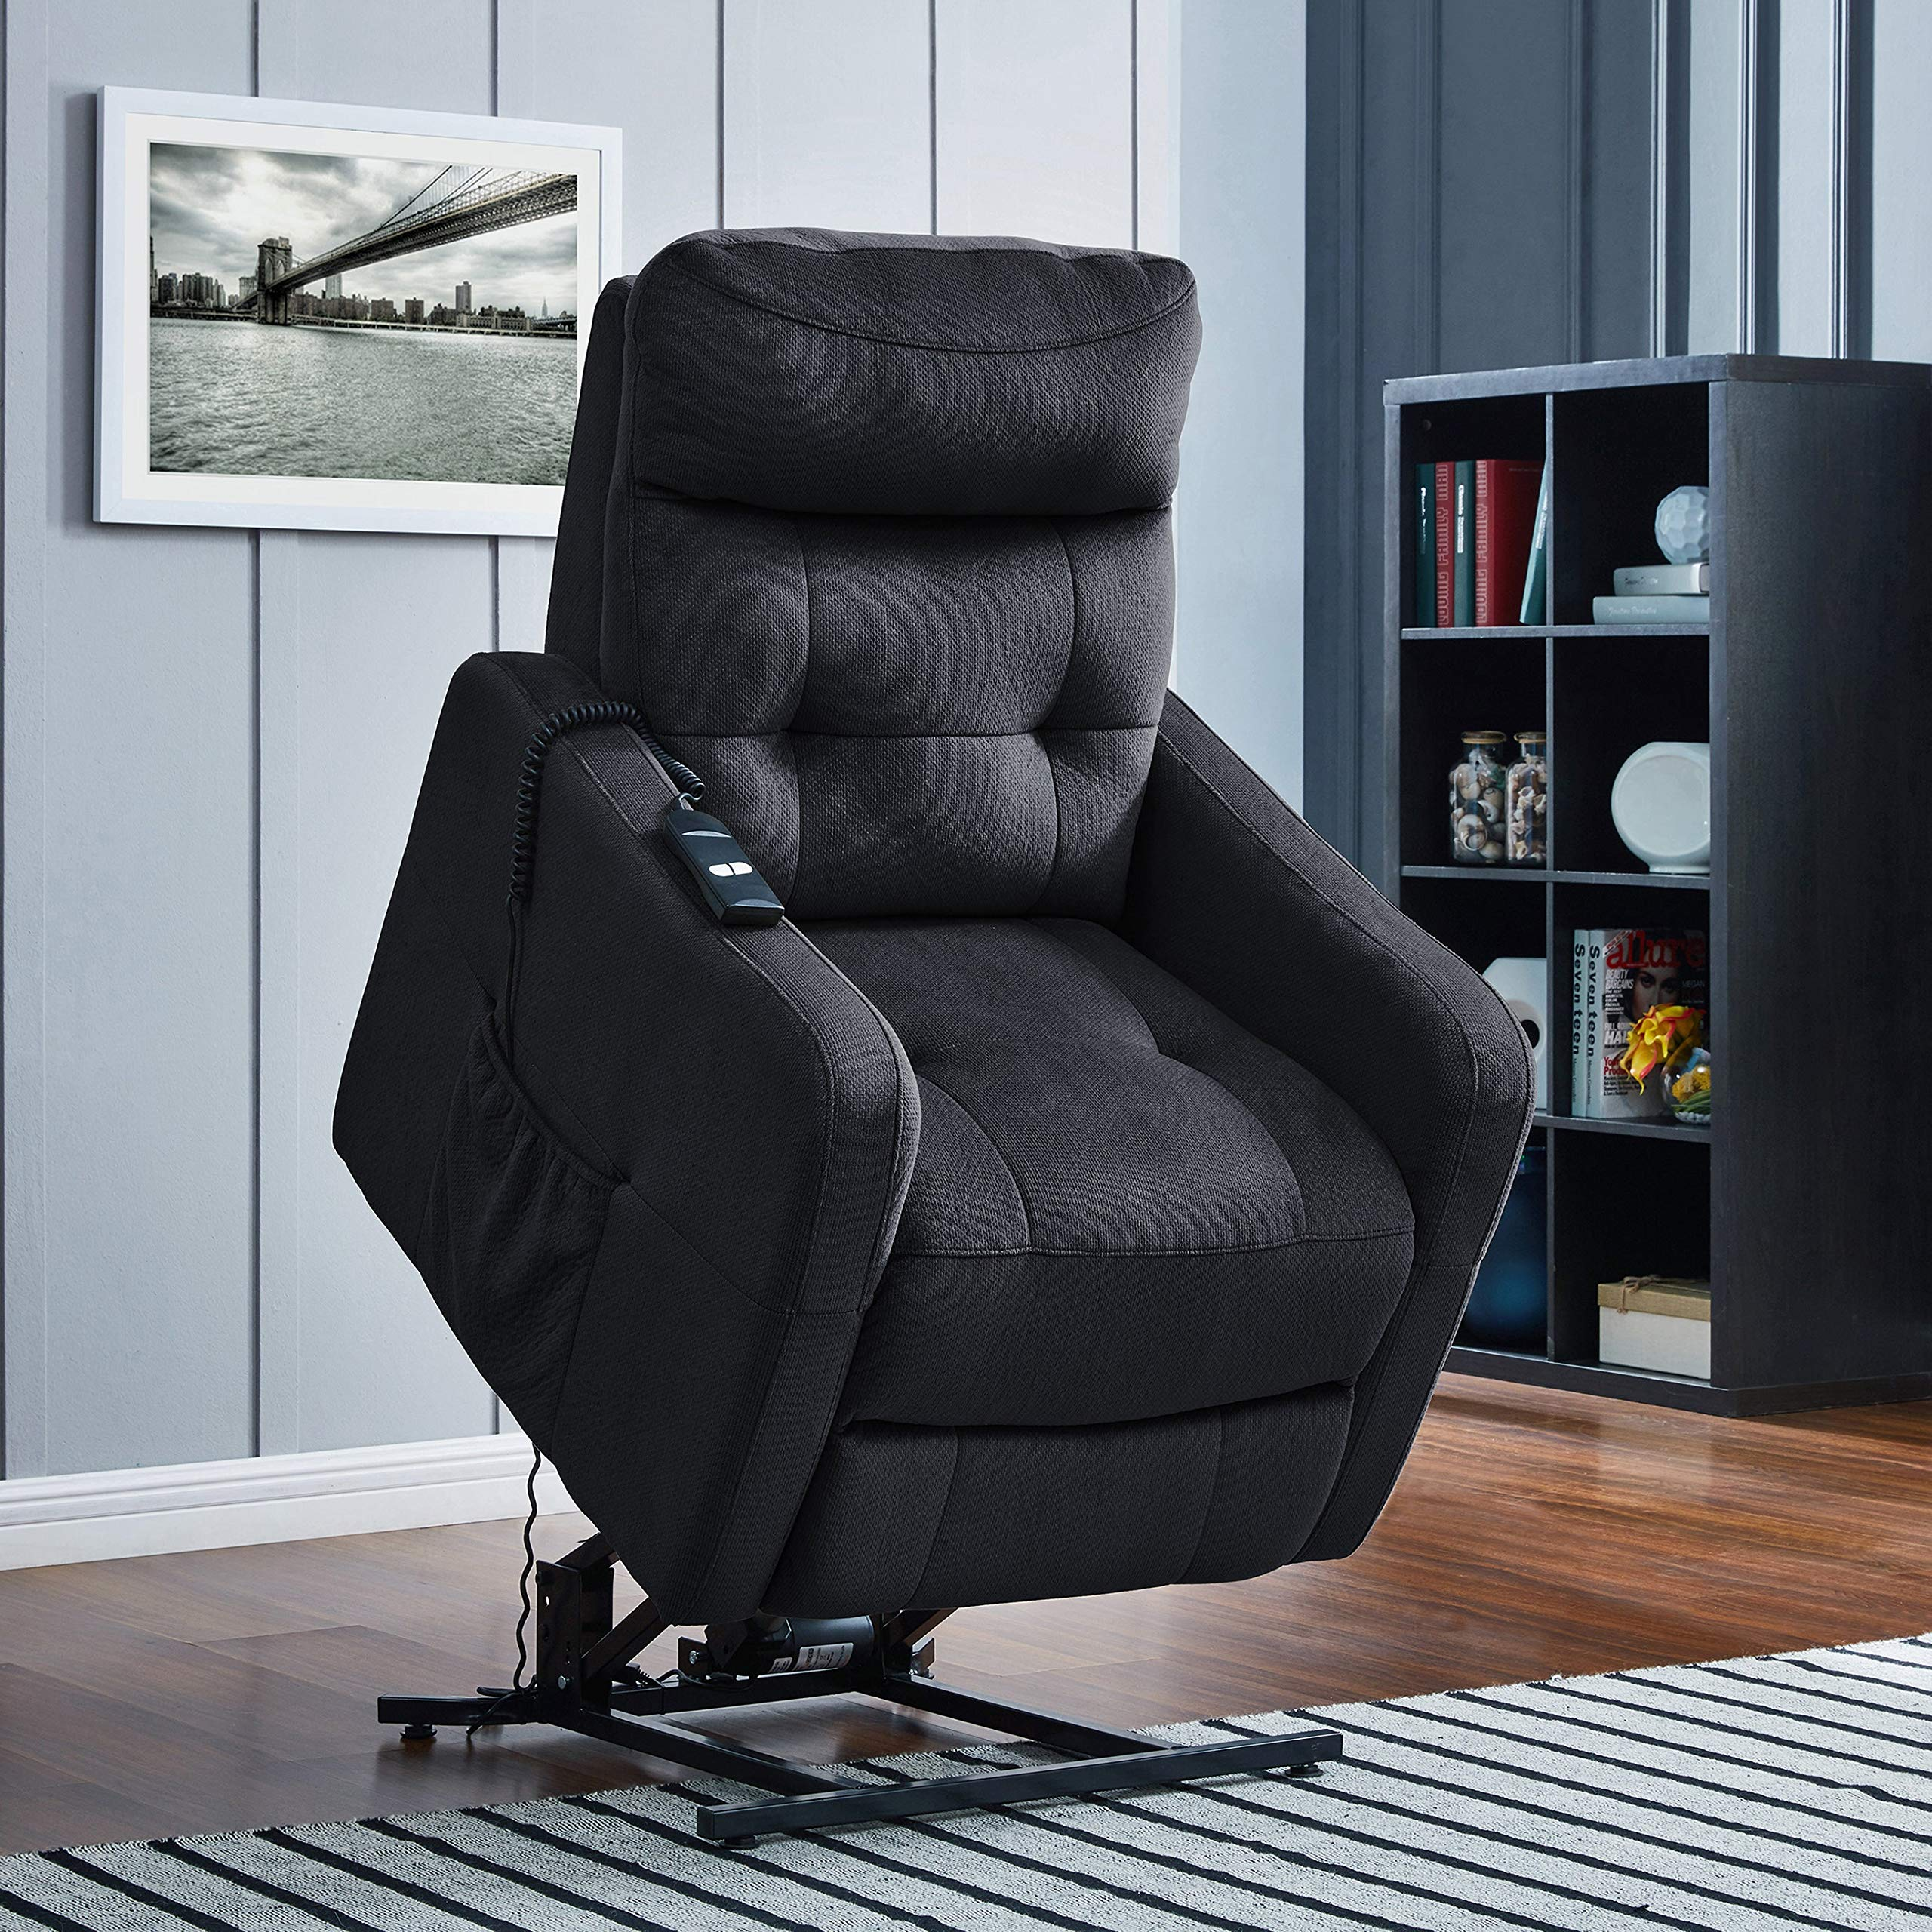 ProLounger Navy Blue Velour Power Recline and Lift Chair by ProLounger